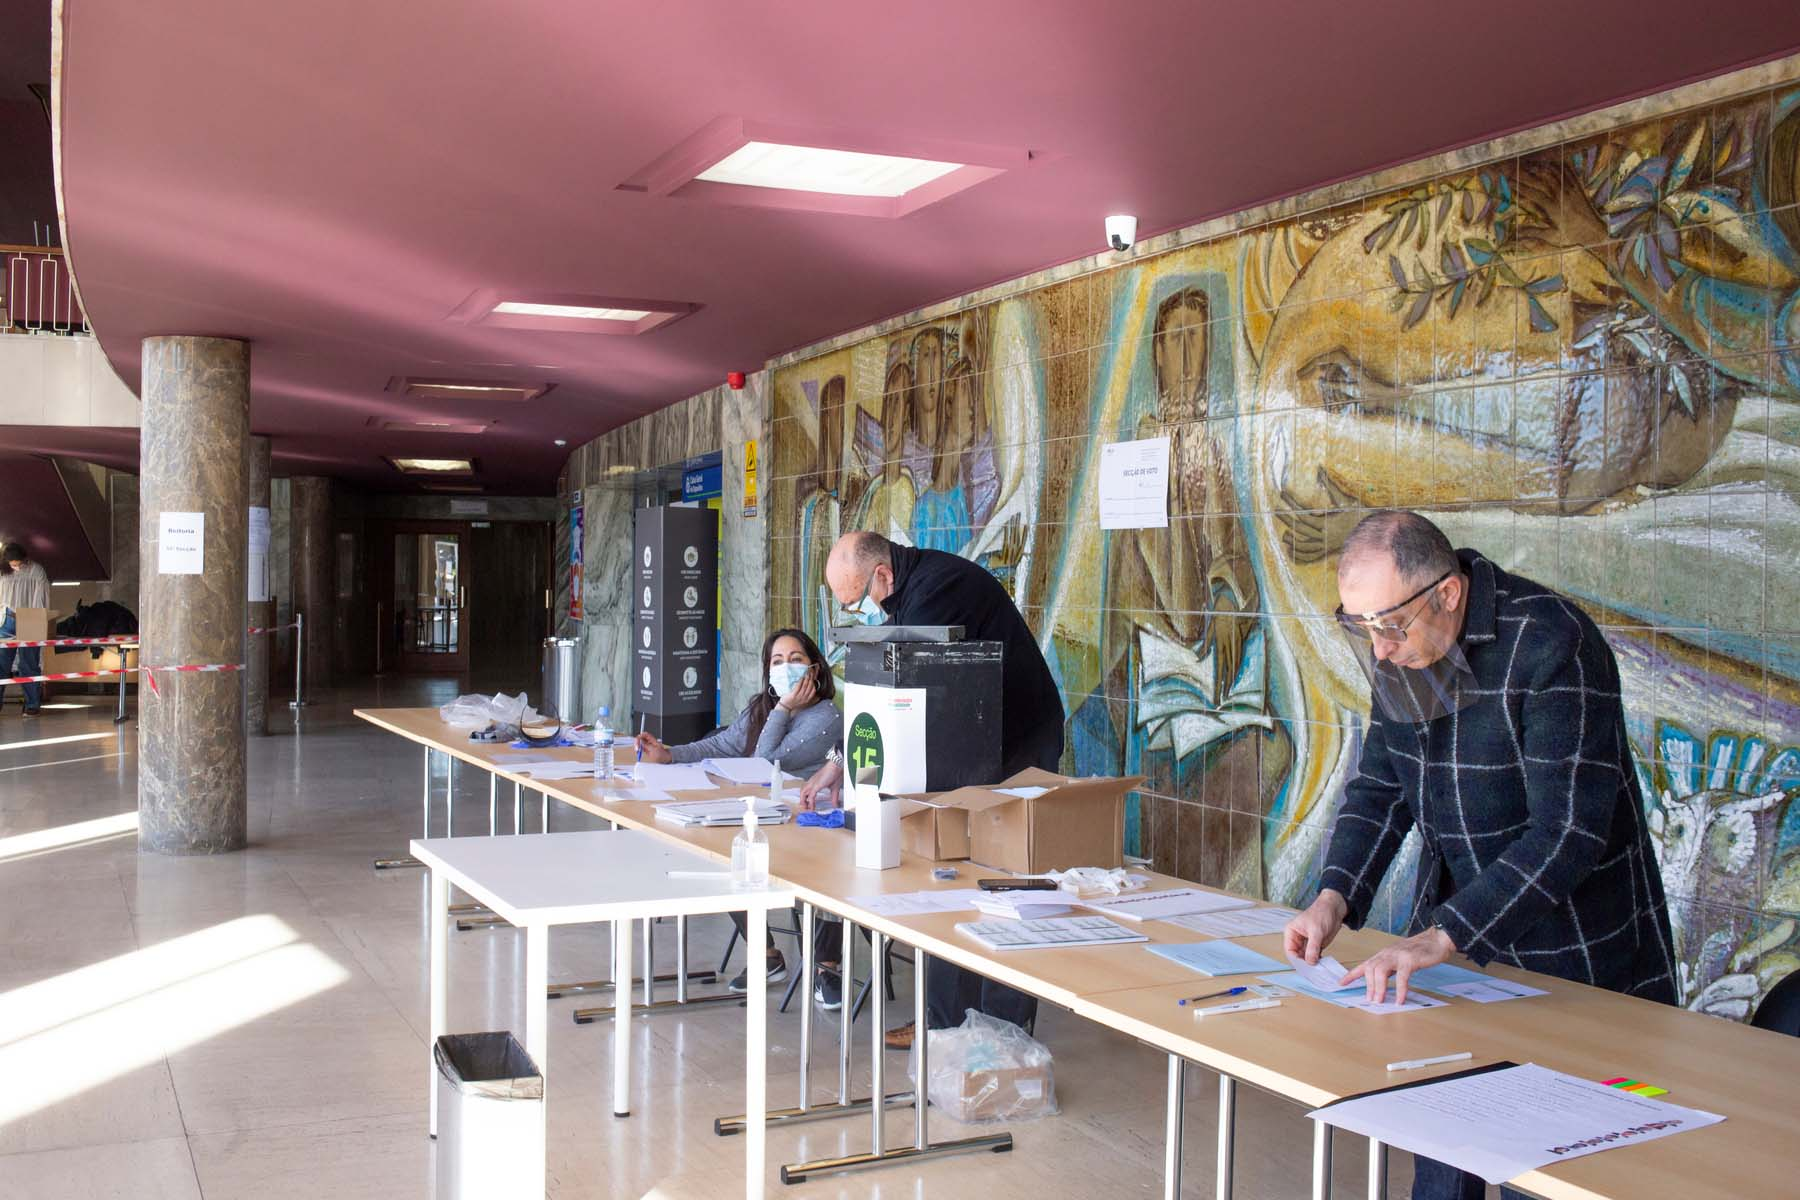 voting in Portugal